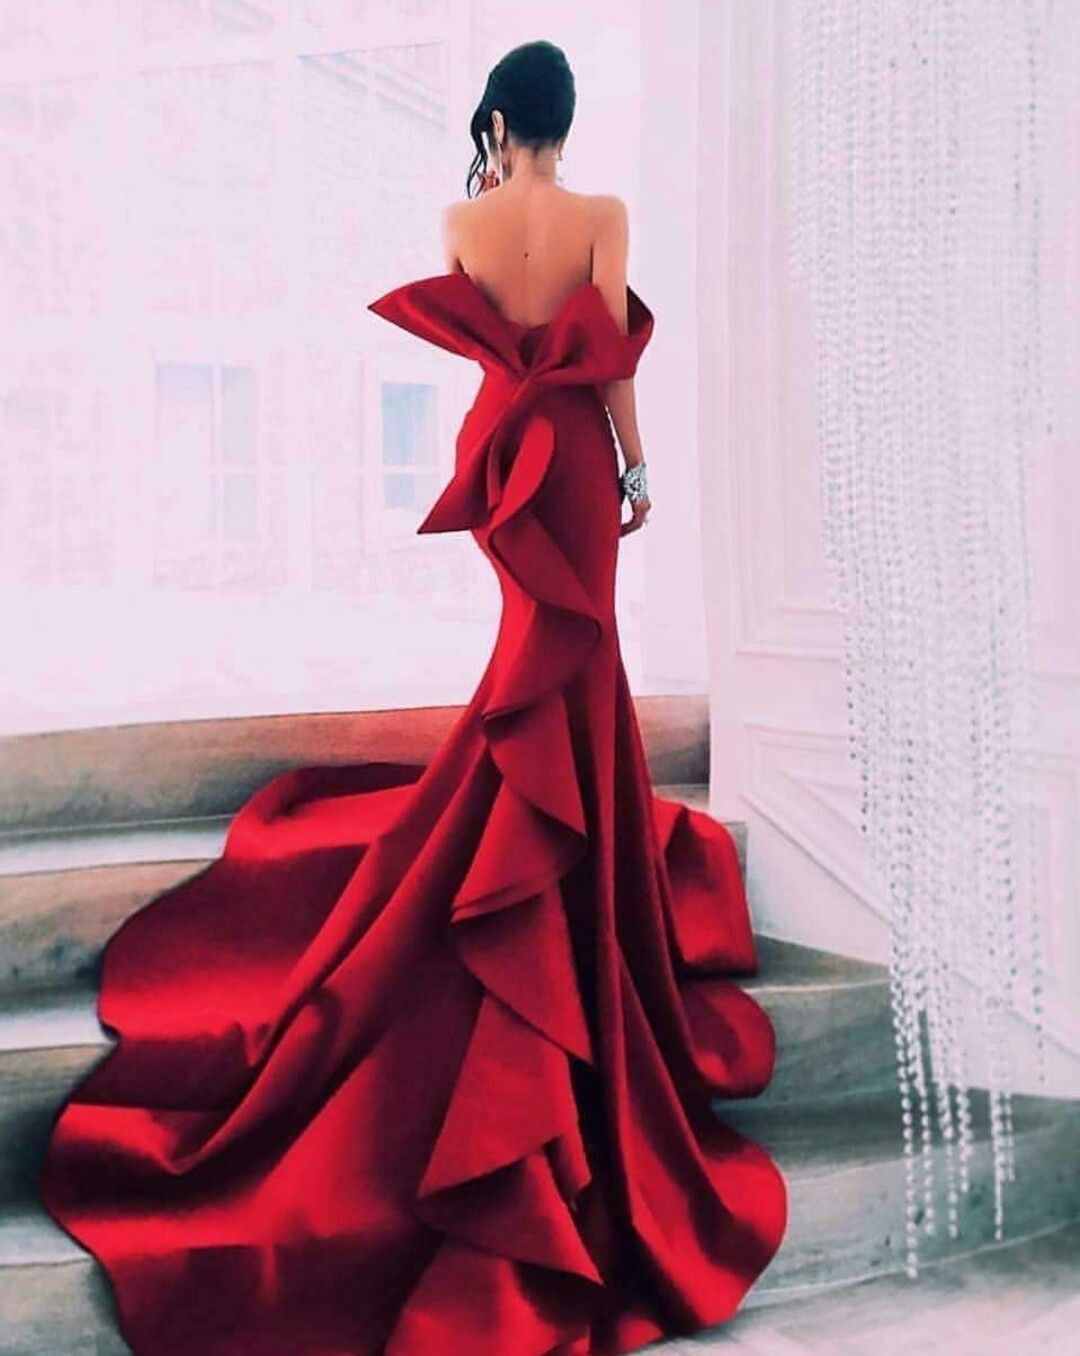 Pin by Tierra Blount on wedding | Pinterest | Prom and Fashion